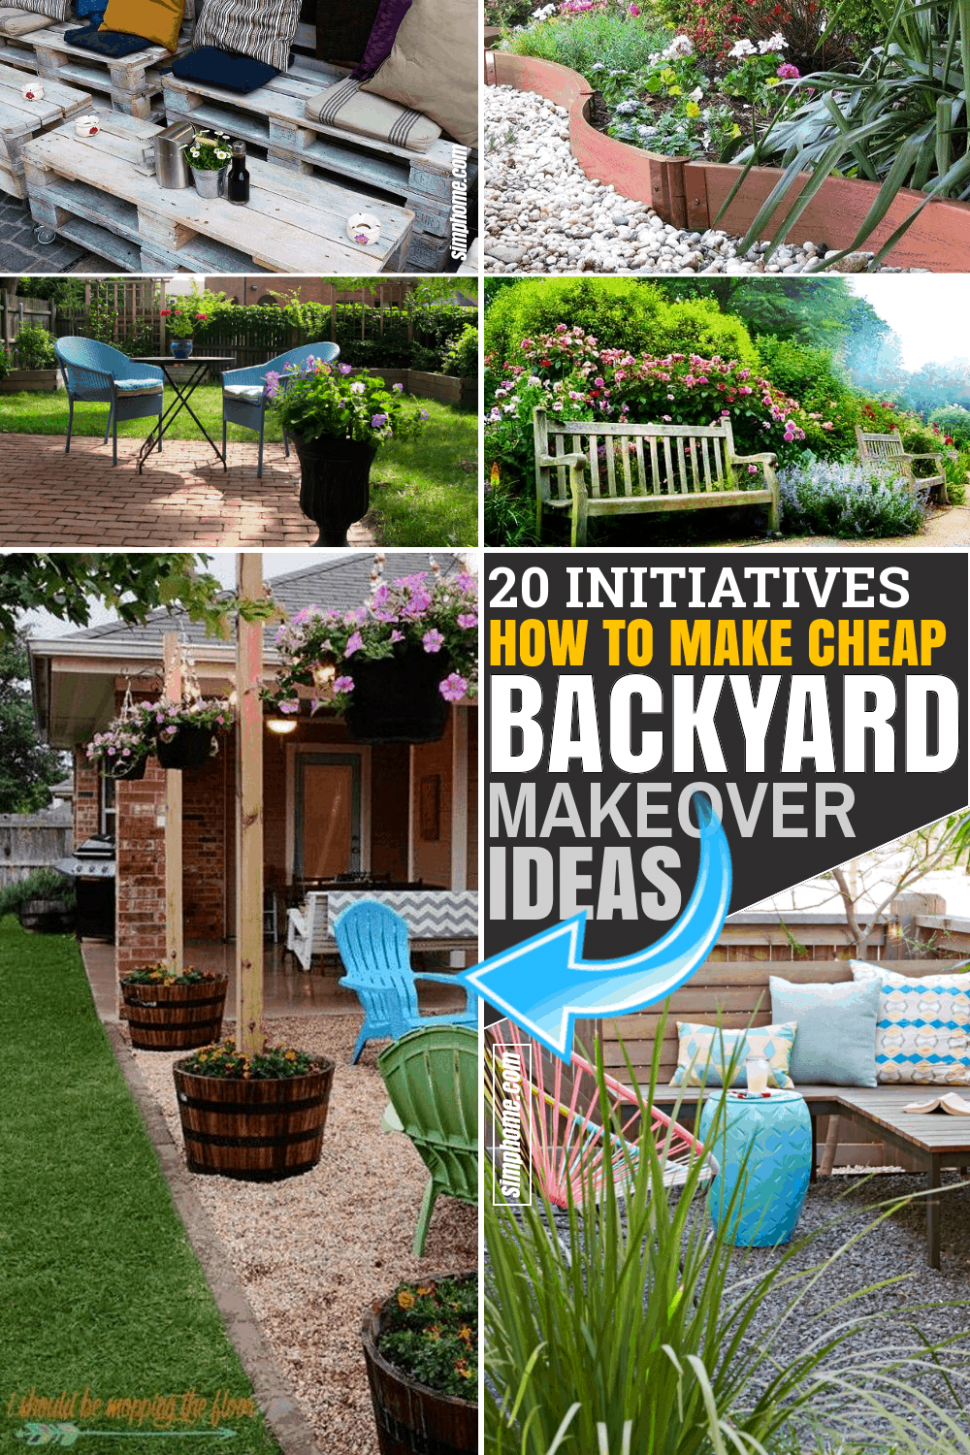 12 Initiatives of Cheap Backyard Makeover ideas - Simphome - backyard makeover ideas